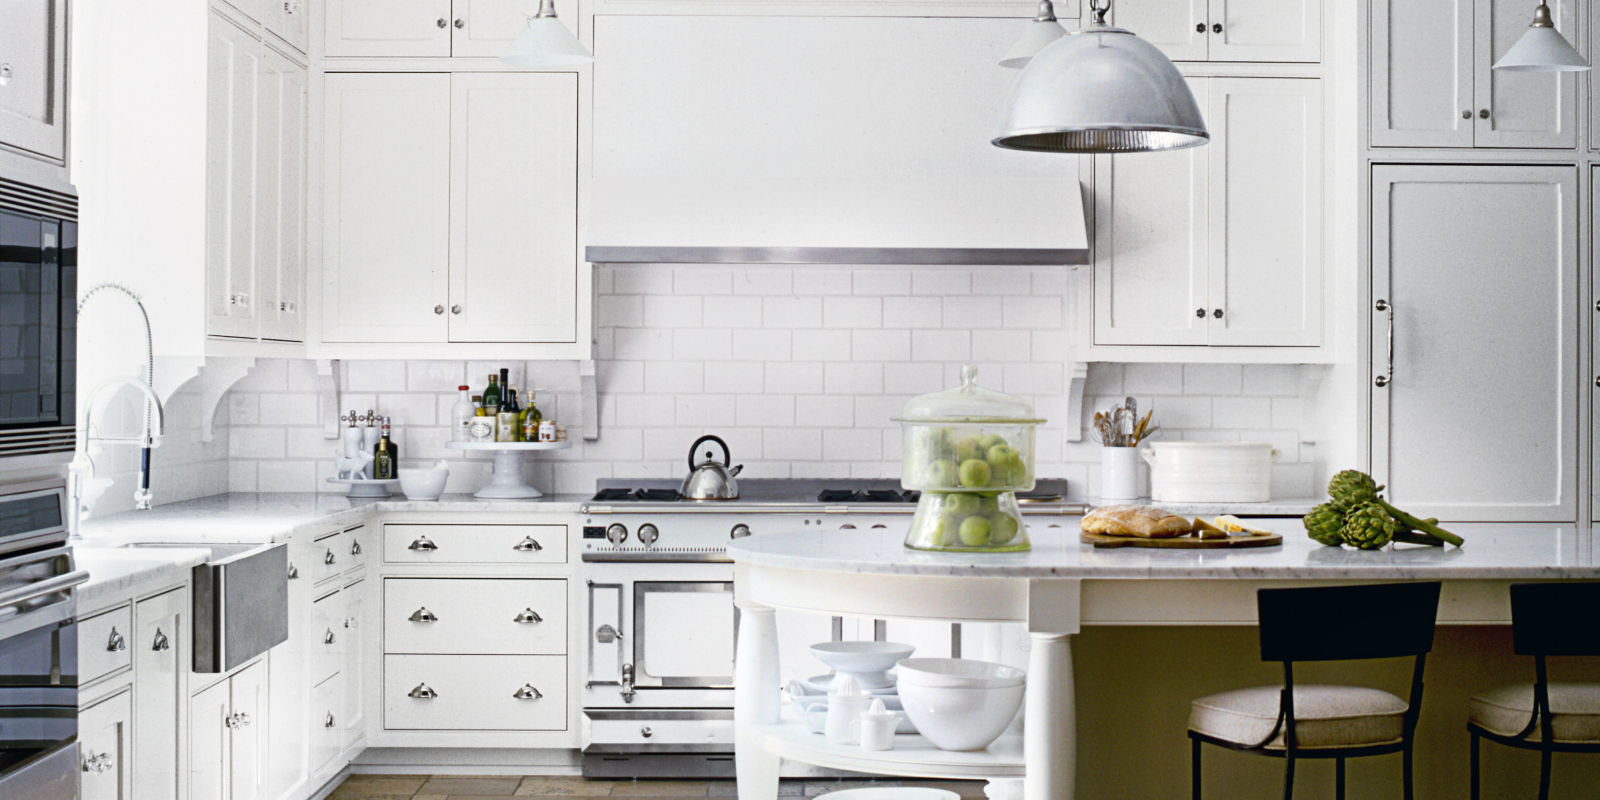 Kitchen Images white kitchen design ideas - decorating white kitchens